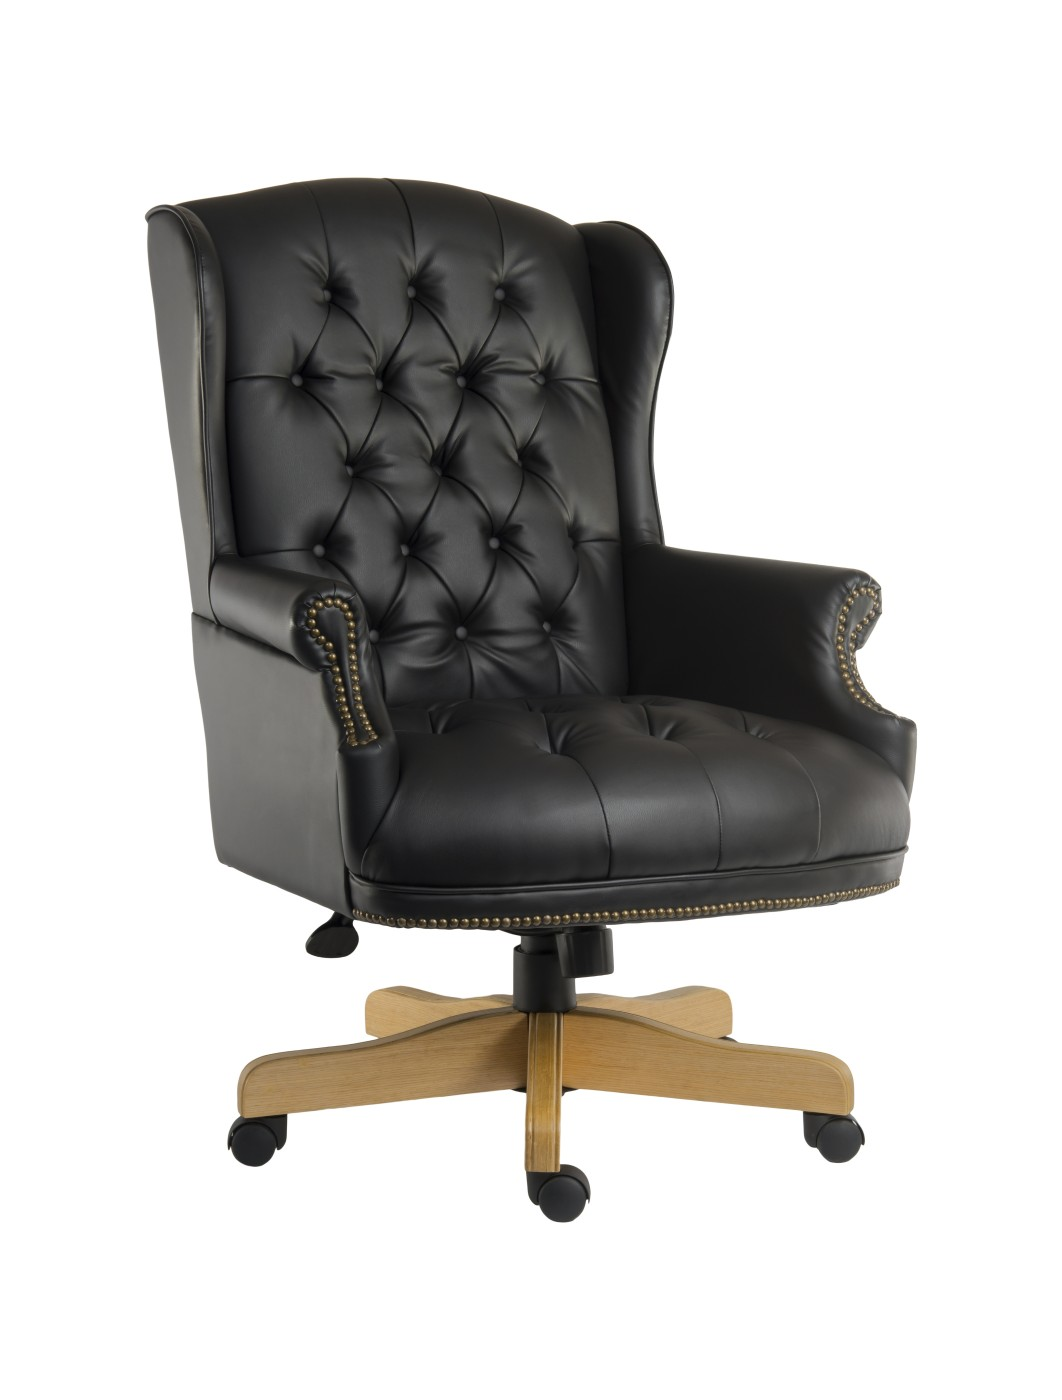 Leather Office Chairs Chairman Noir Leather Executive Chair B6927 121 Office